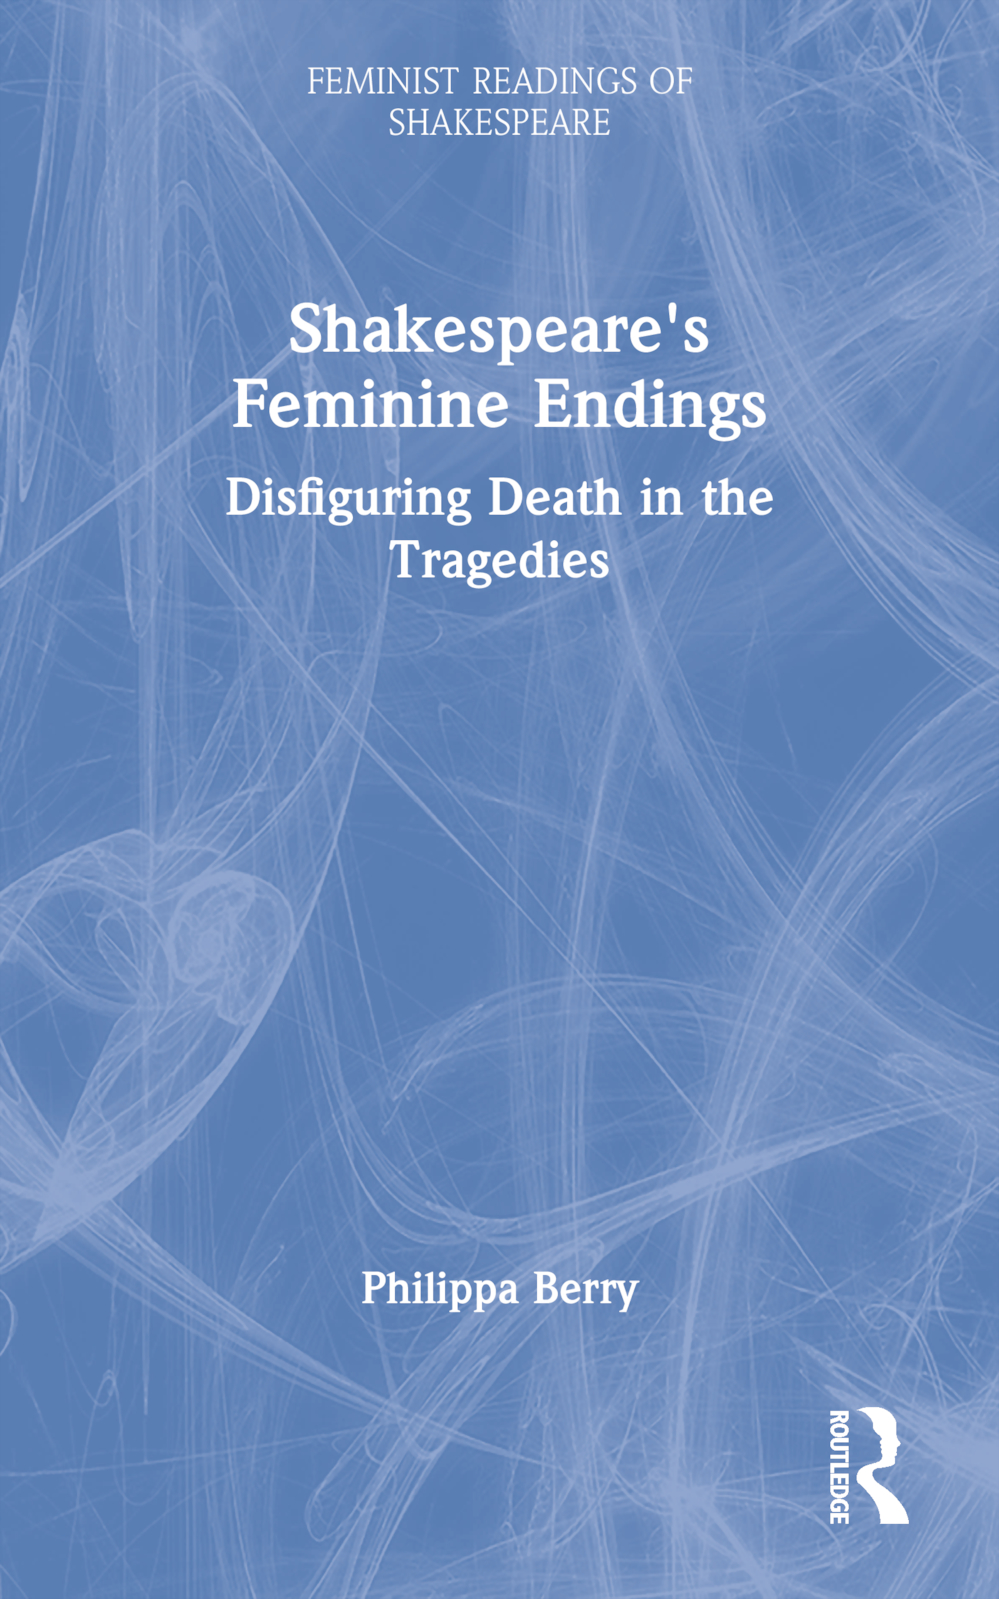 Shakespeare's Feminine Endings: Disfiguring Death in the Tragedies book cover